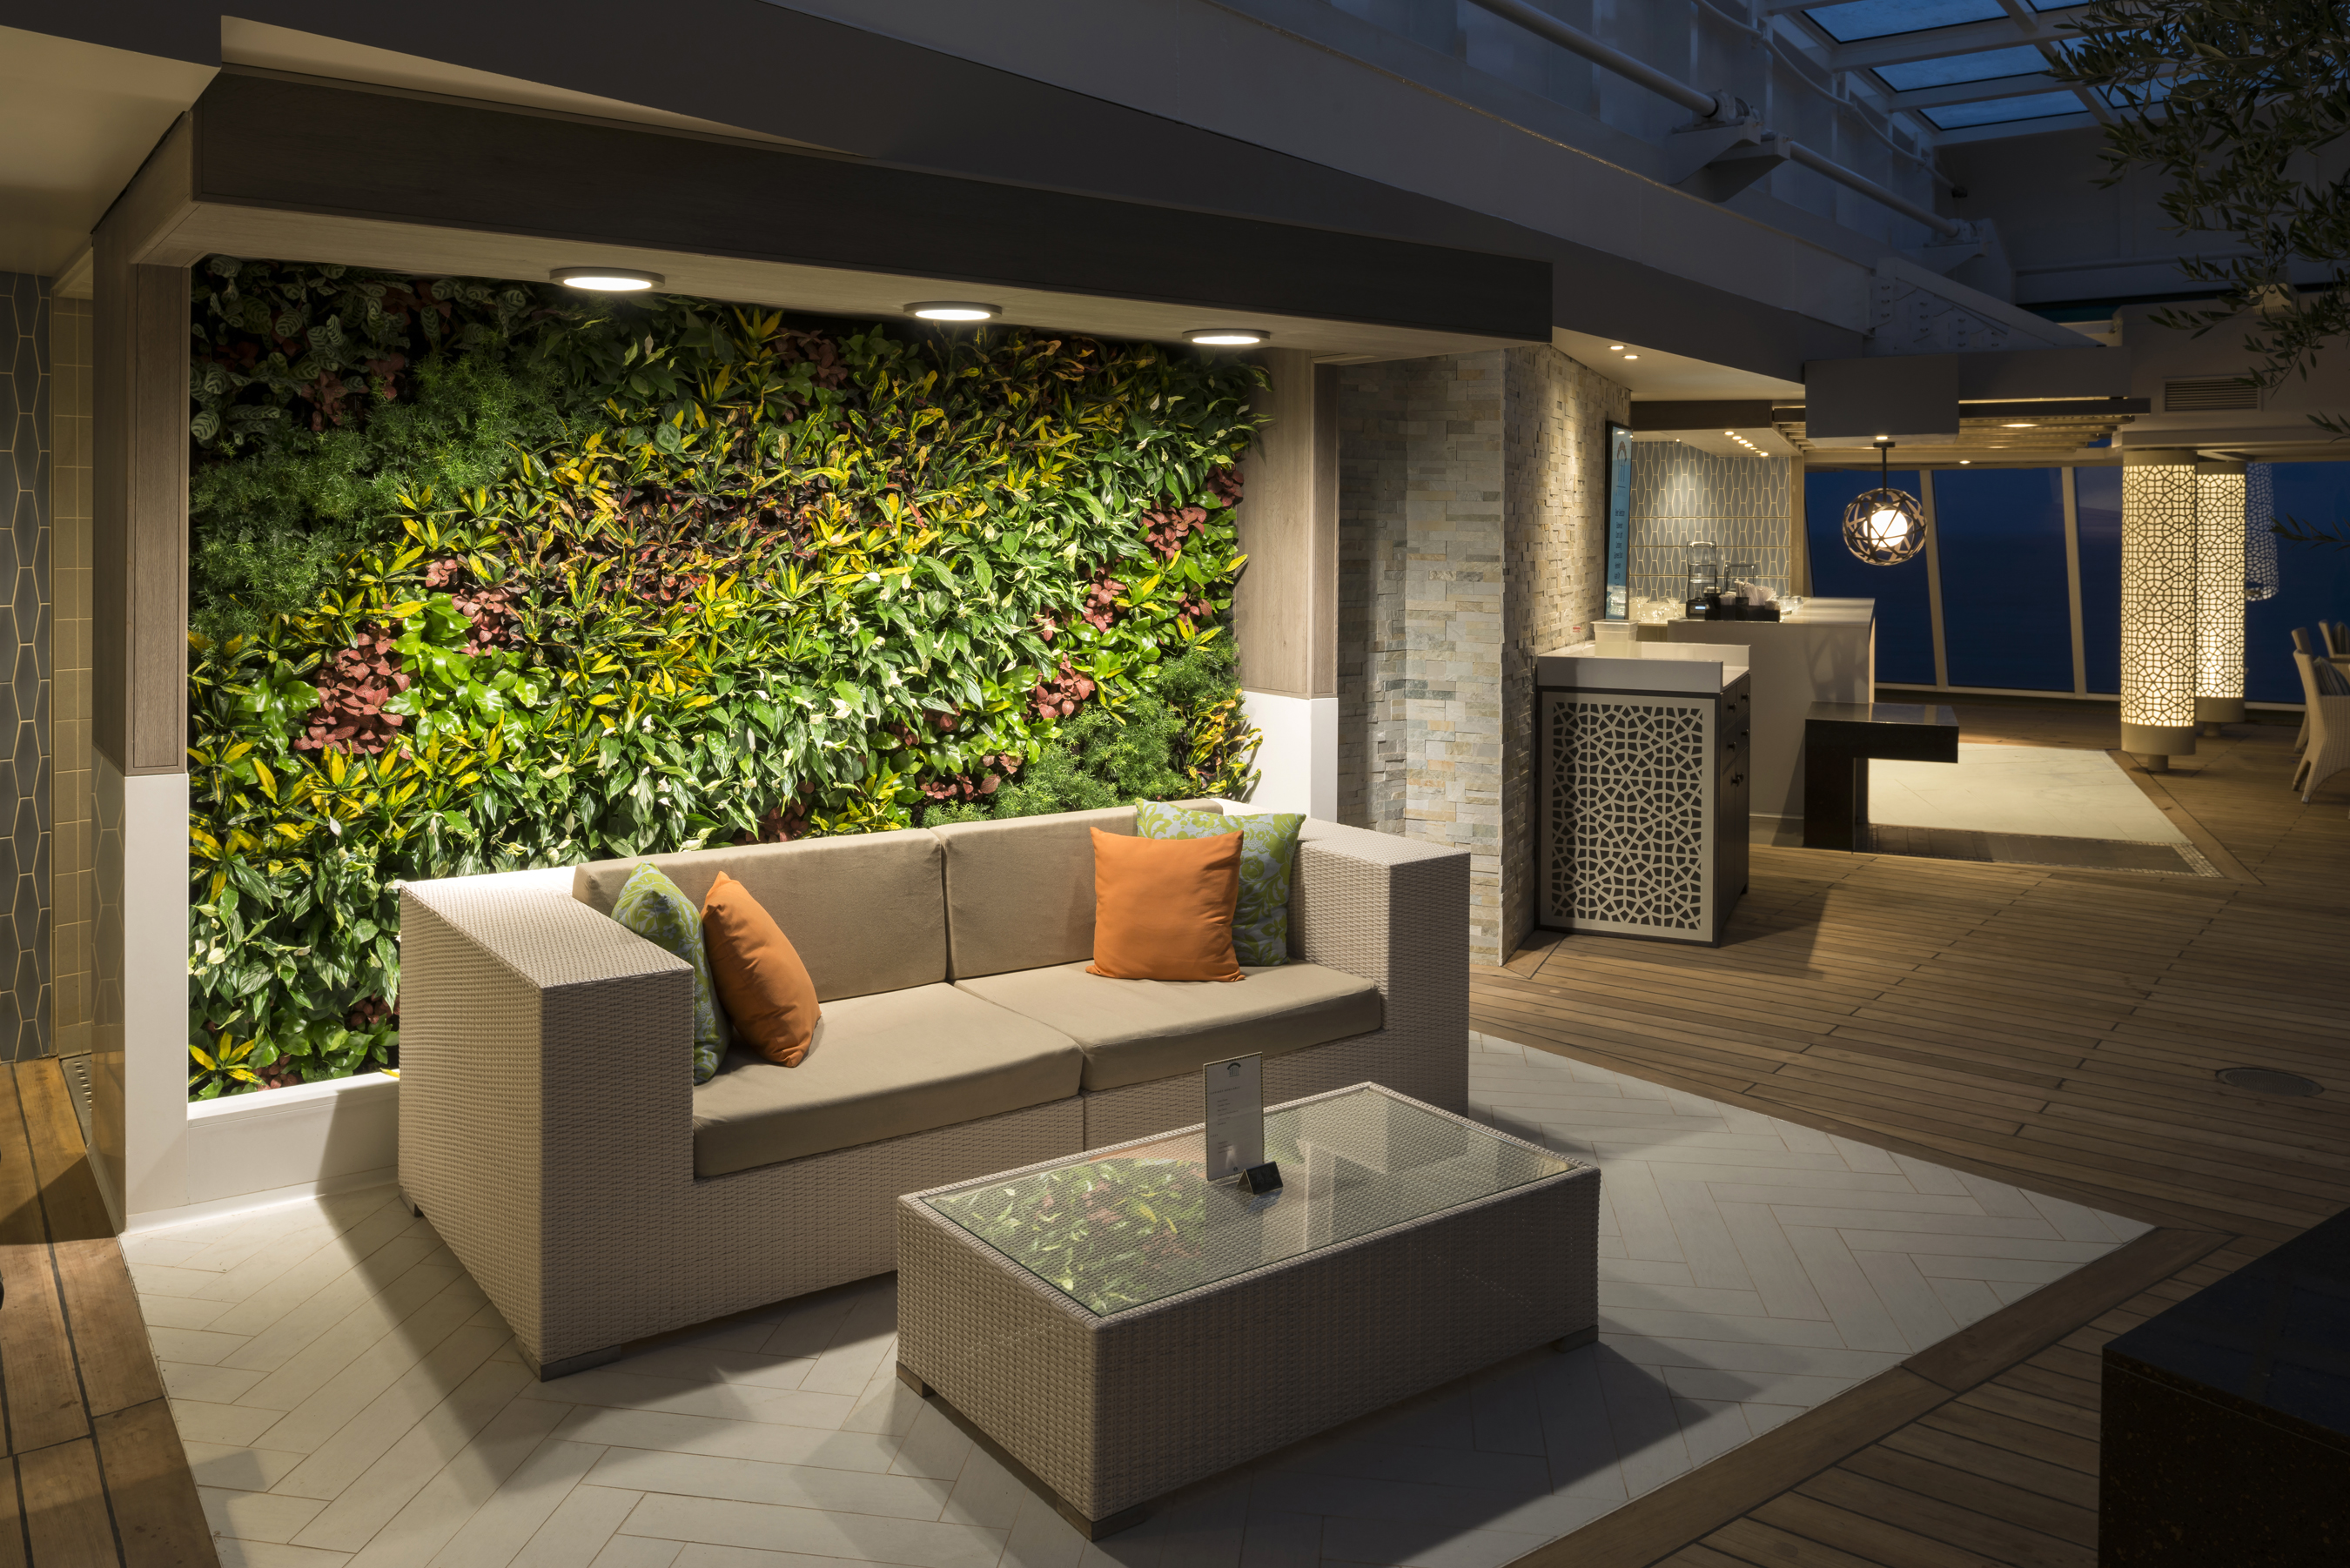 crystal cruises crystal serenity trident grill living wall 2.jpg